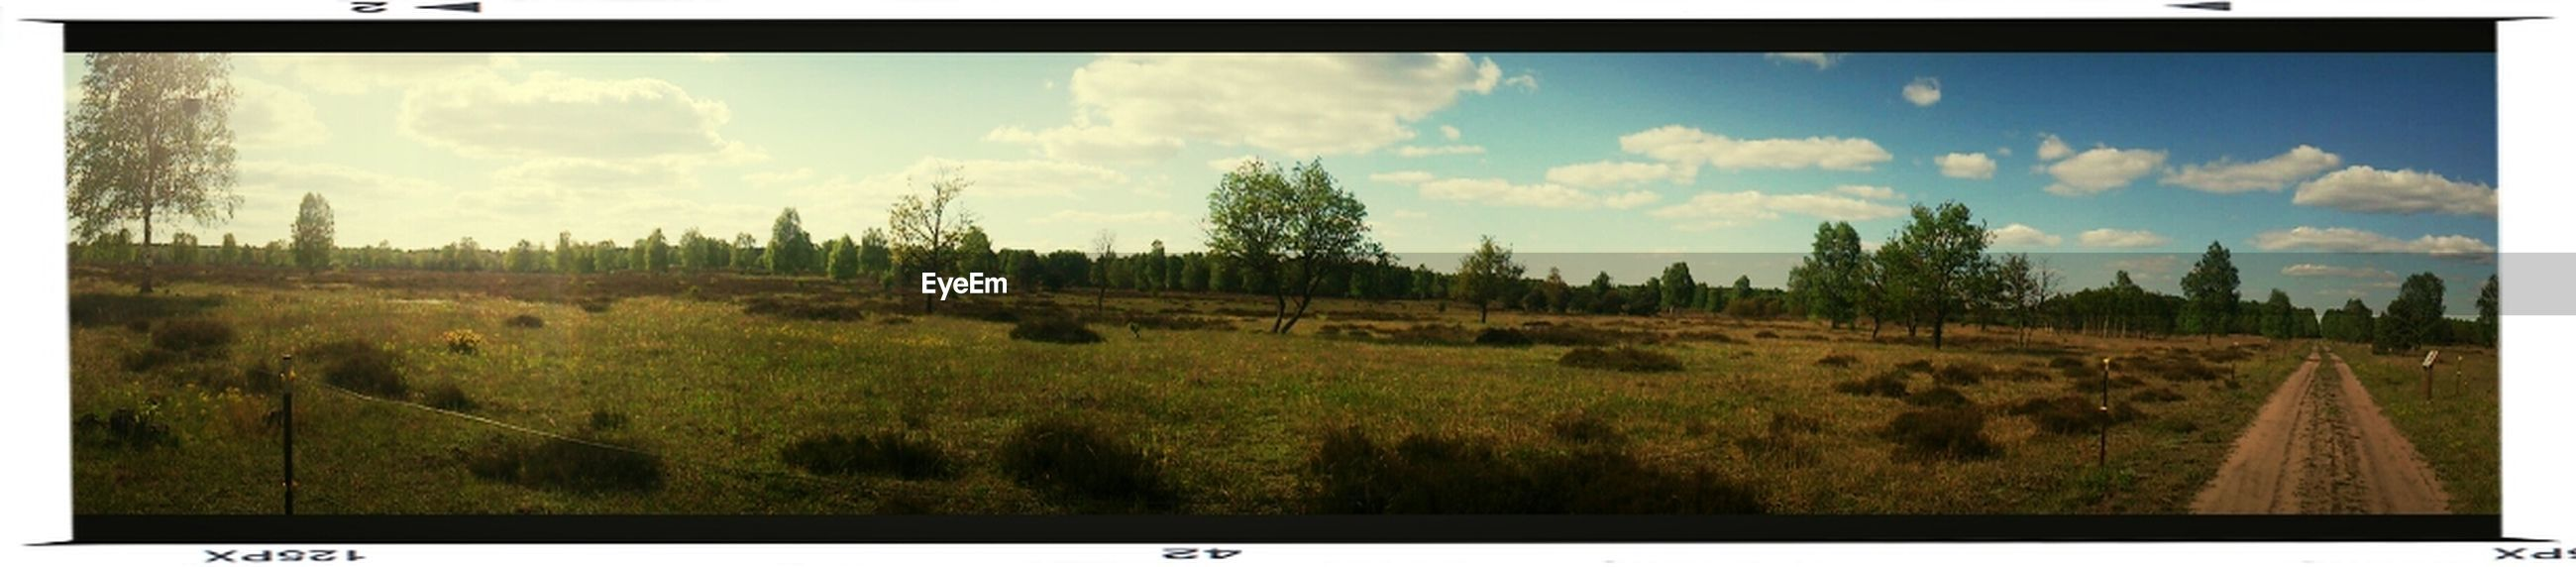 transfer print, auto post production filter, sky, landscape, tranquil scene, tree, tranquility, field, grass, cloud - sky, cloud, scenics, nature, panoramic, beauty in nature, growth, frame, blue, outdoors, plant